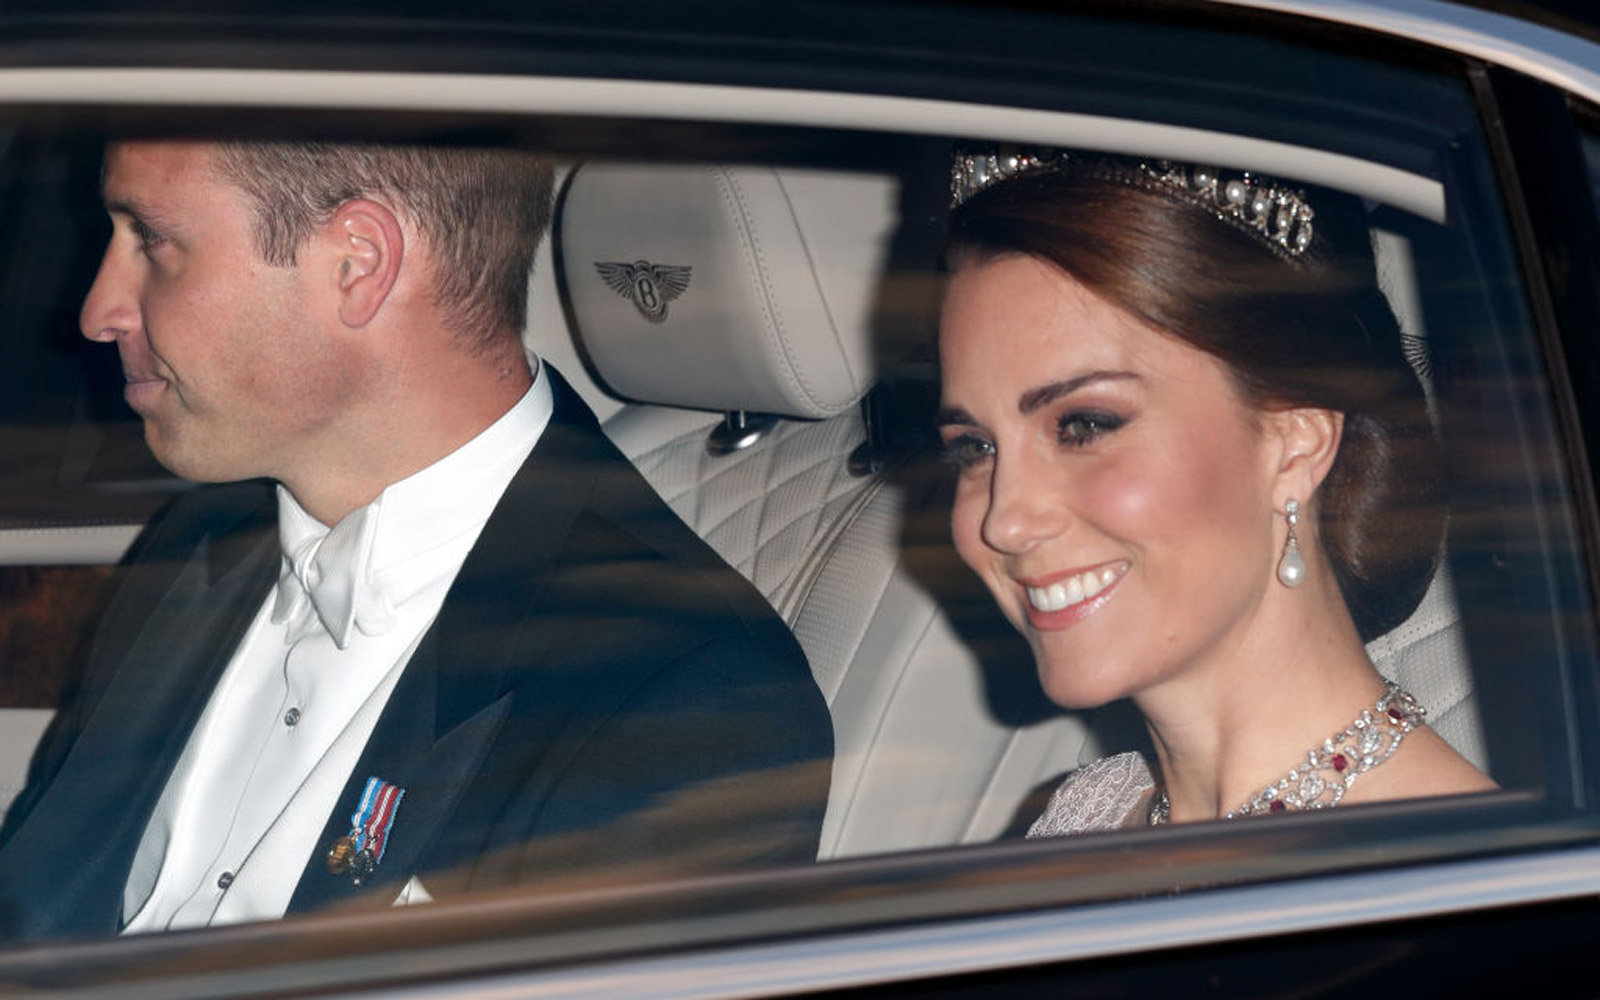 LONDON, UNITED KINGDOM - JULY 12: (EMBARGOED FOR PUBLICATION IN UK NEWSPAPERS UNTIL 48 HOURS AFTER CREATE DATE AND TIME) Prince William, Duke of Cambridge and Catherine, Duchess of Cambridge attend a State Banquet at Buckingham Palace on day 1 of the Span